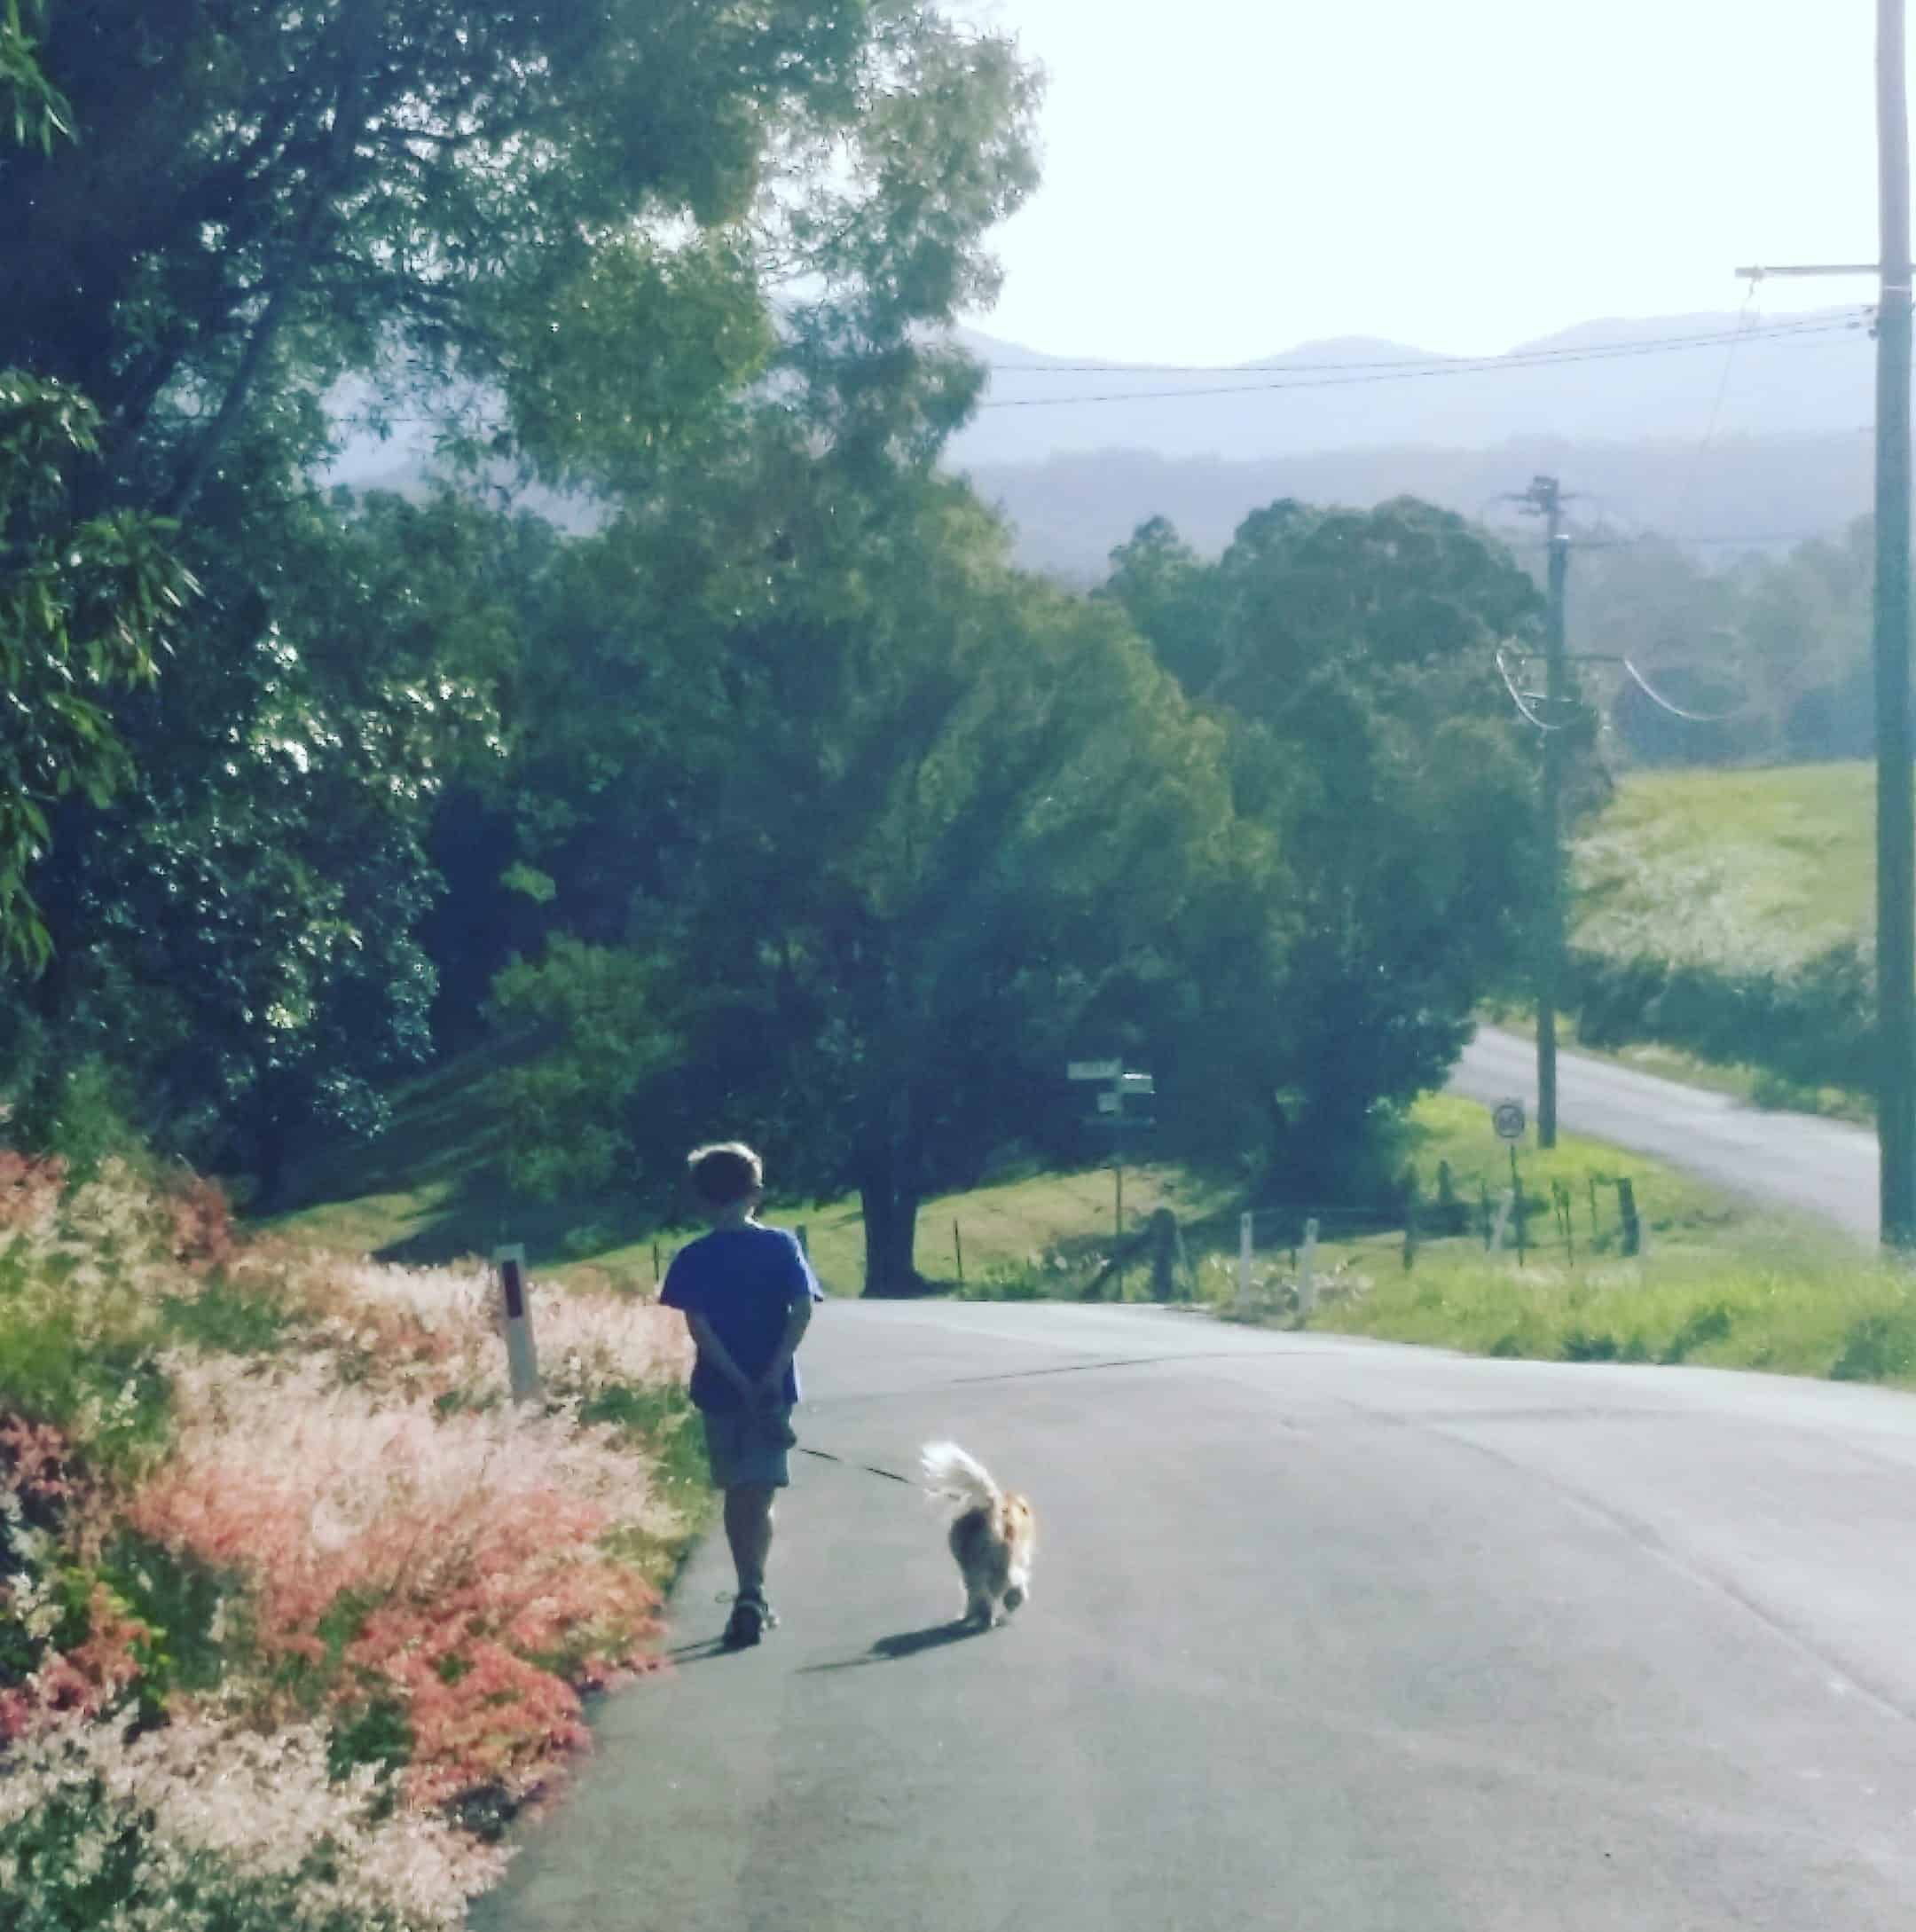 Easter 2017 Outdoor Living - Long Country Walks